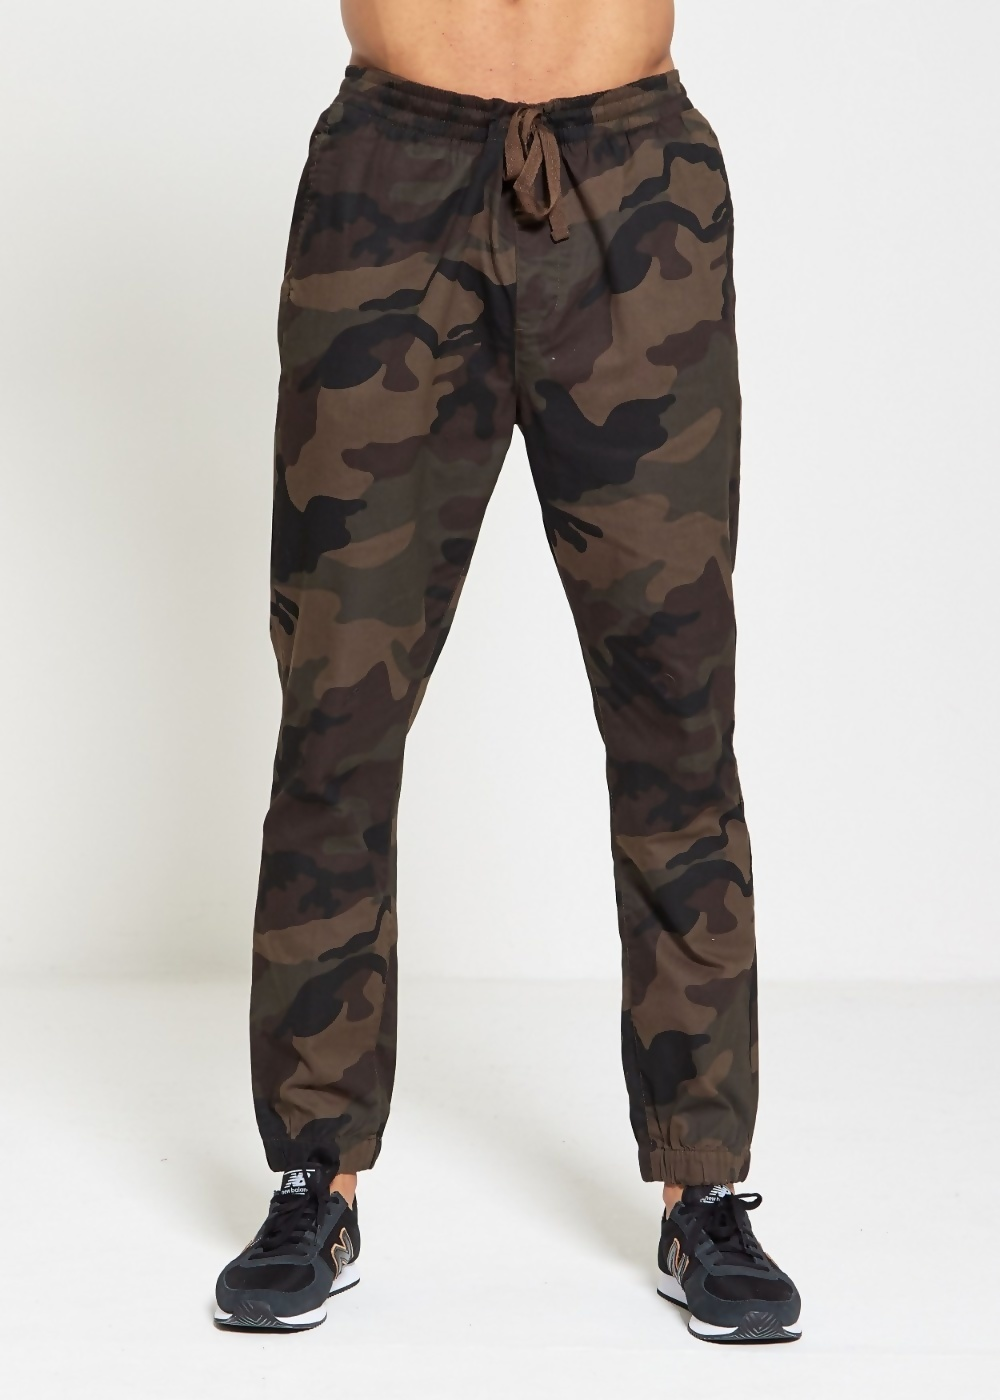 clearance clearance great look Mens Camo Cuff Twill Trousers